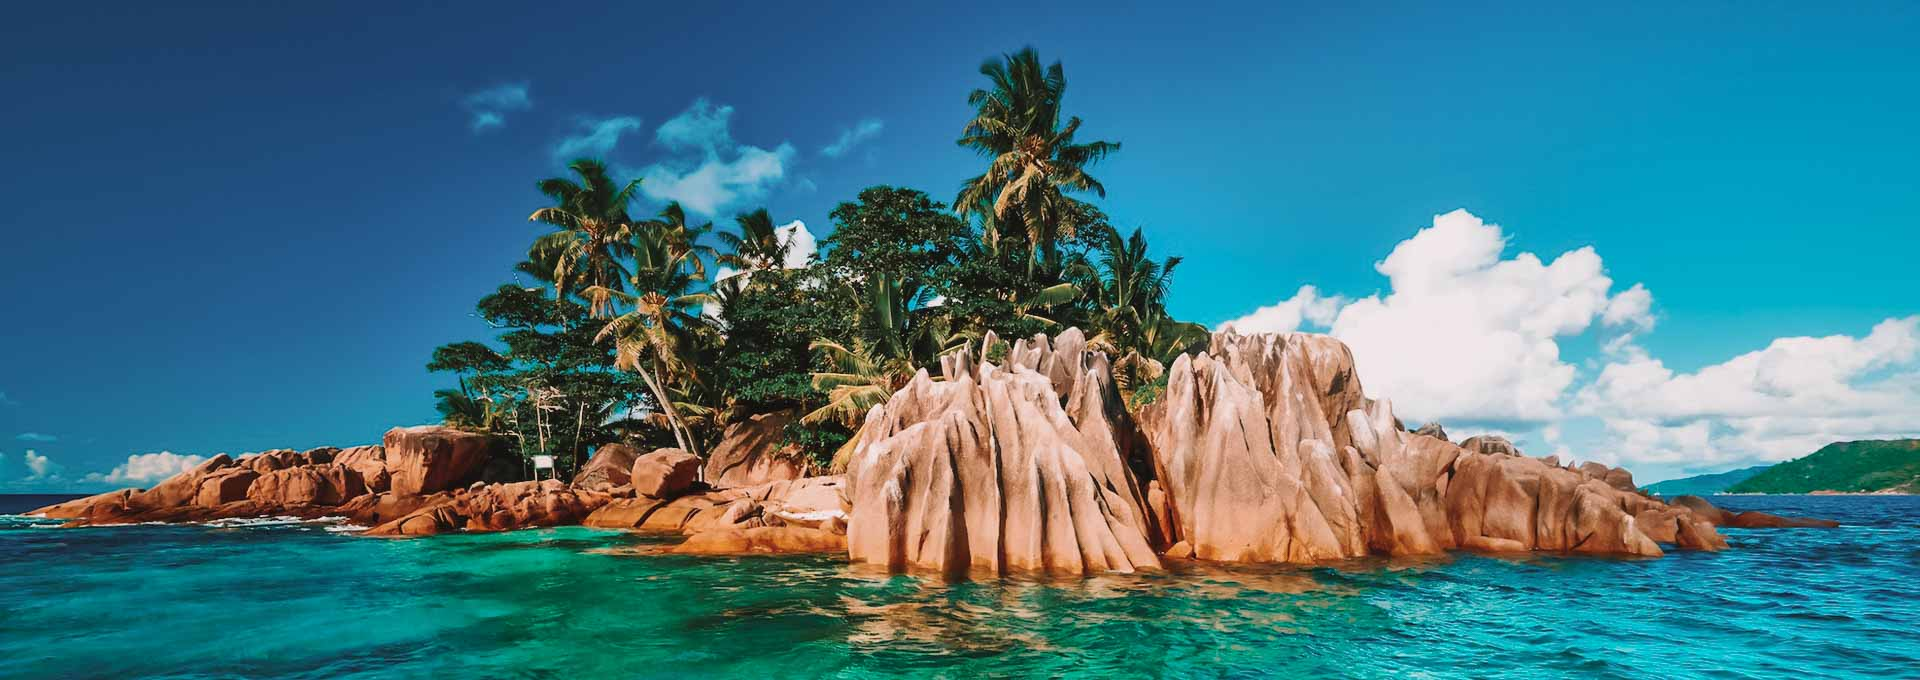 Seychelles Luxury Holiday Packages